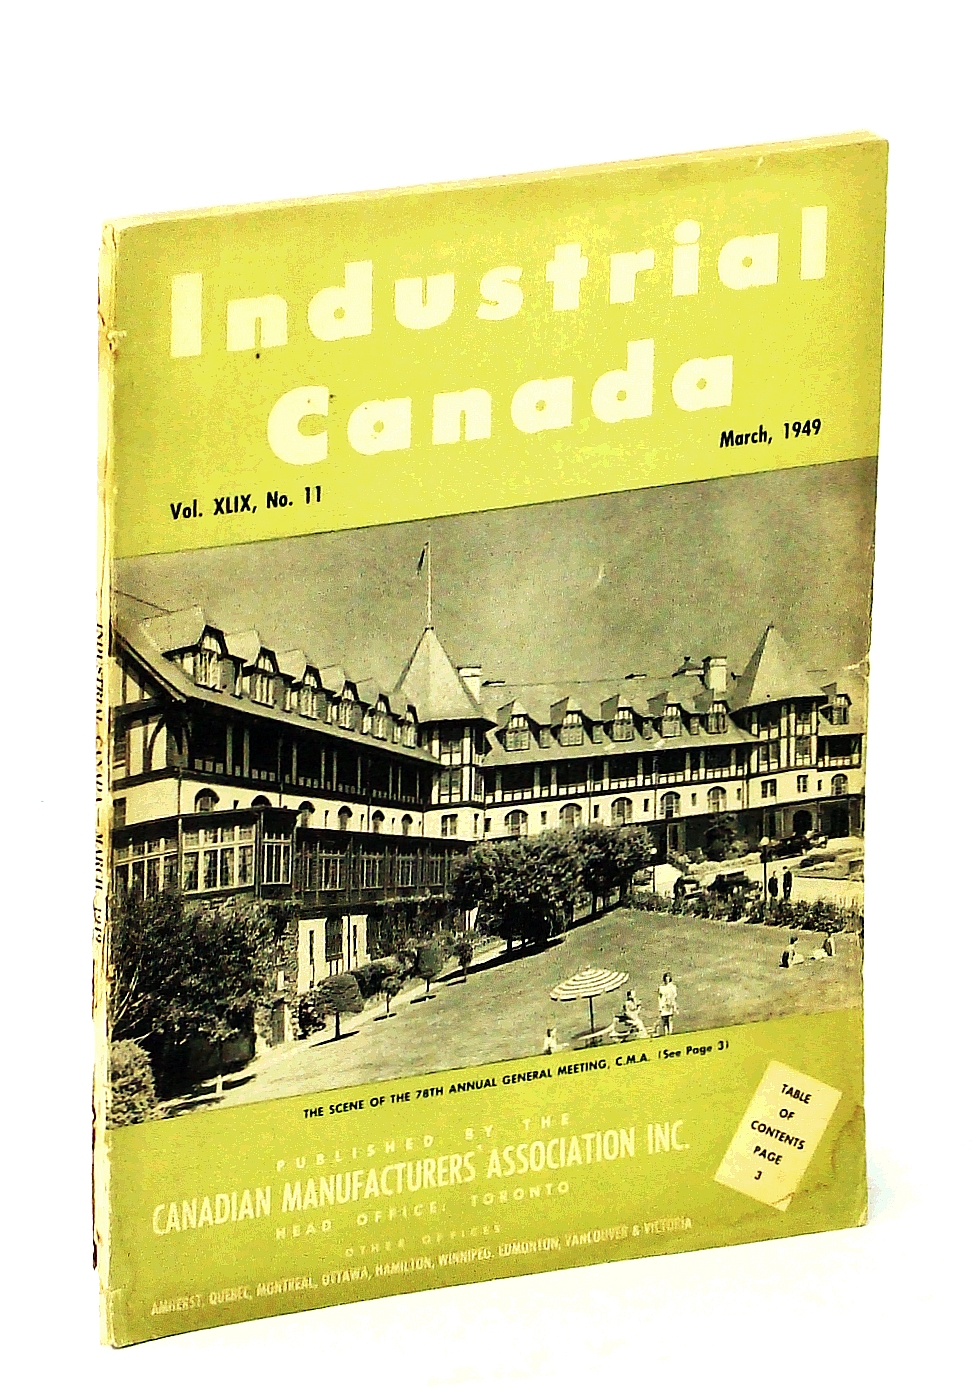 Image for Industrial Canada [Magazine] March [Mar.], 1949, Vol. XLIX, No. 11 - Cover Photo of The Algonquin Hotel at St. Andrews-by-the-Sea, N.B.